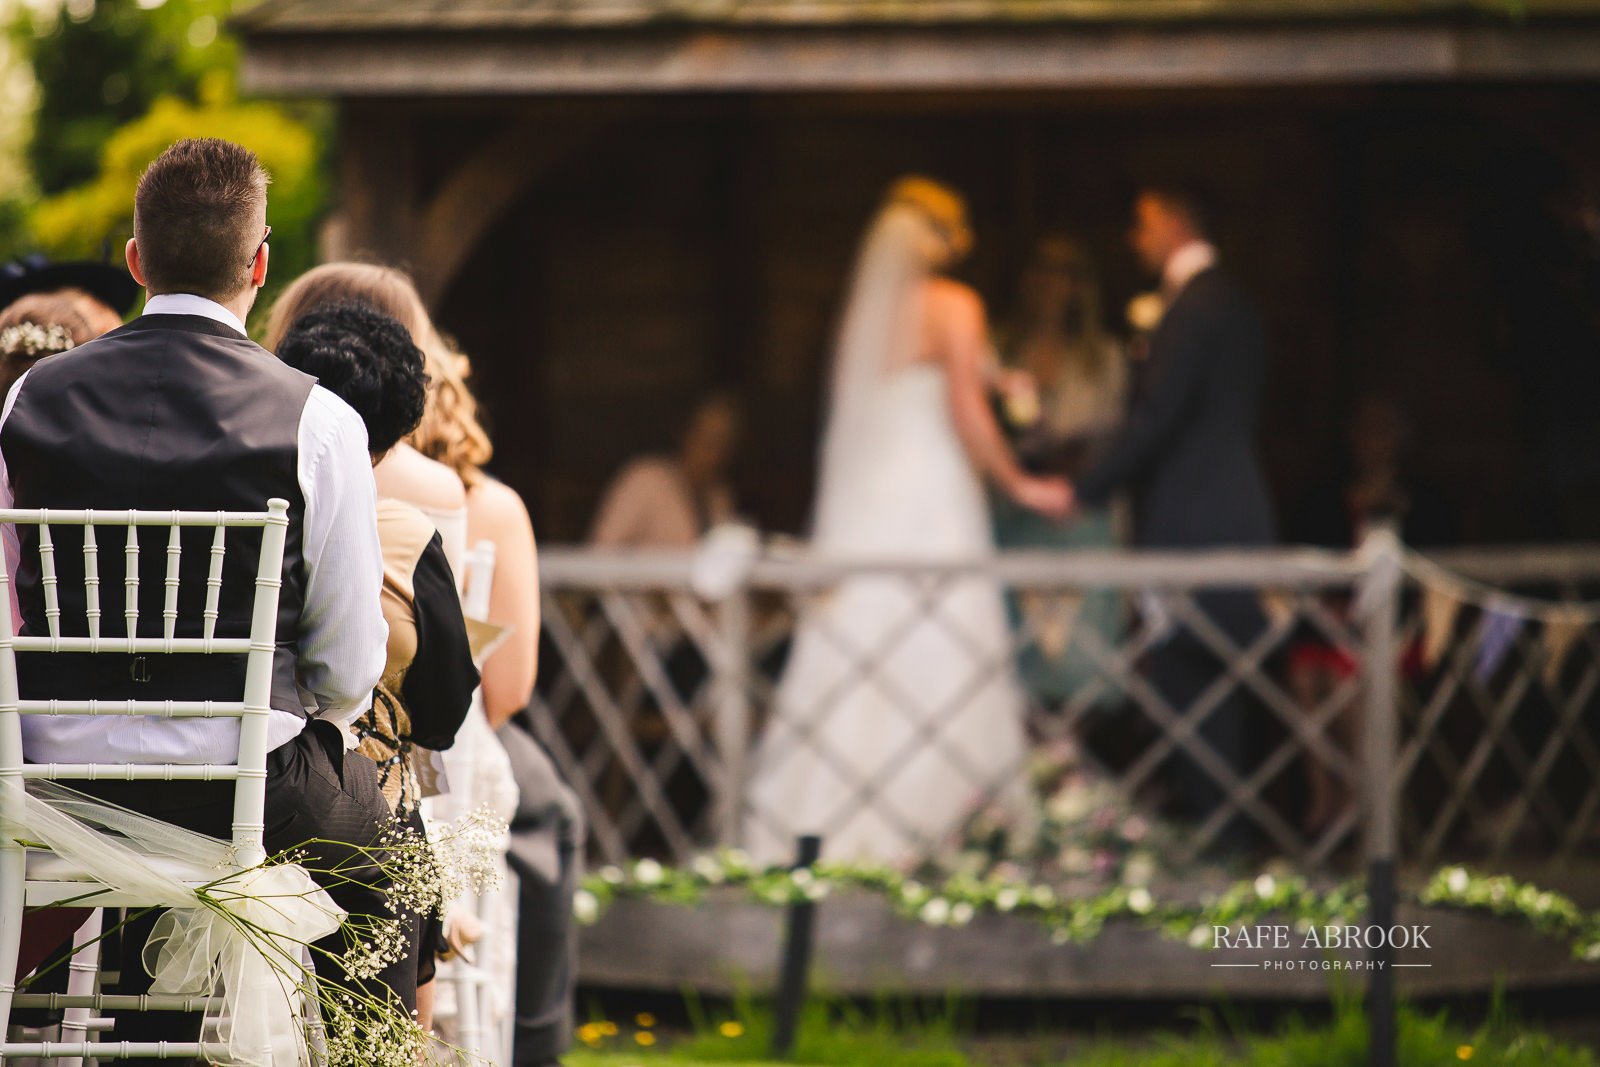 south farm wedding royston hertfordshire wedding photographer rafe abrook photography-1527.jpg